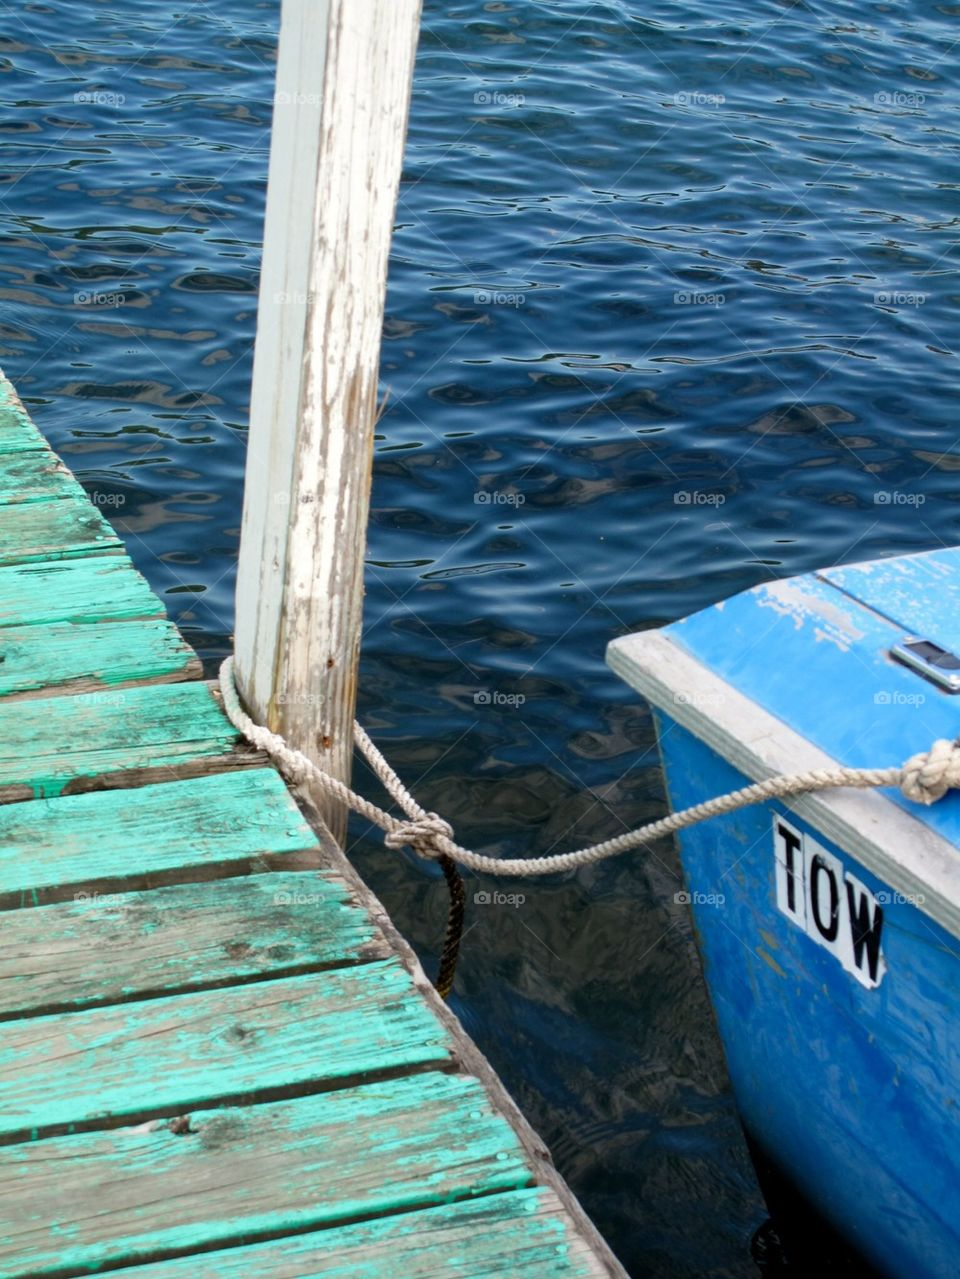 The green pontoon and the blue boat